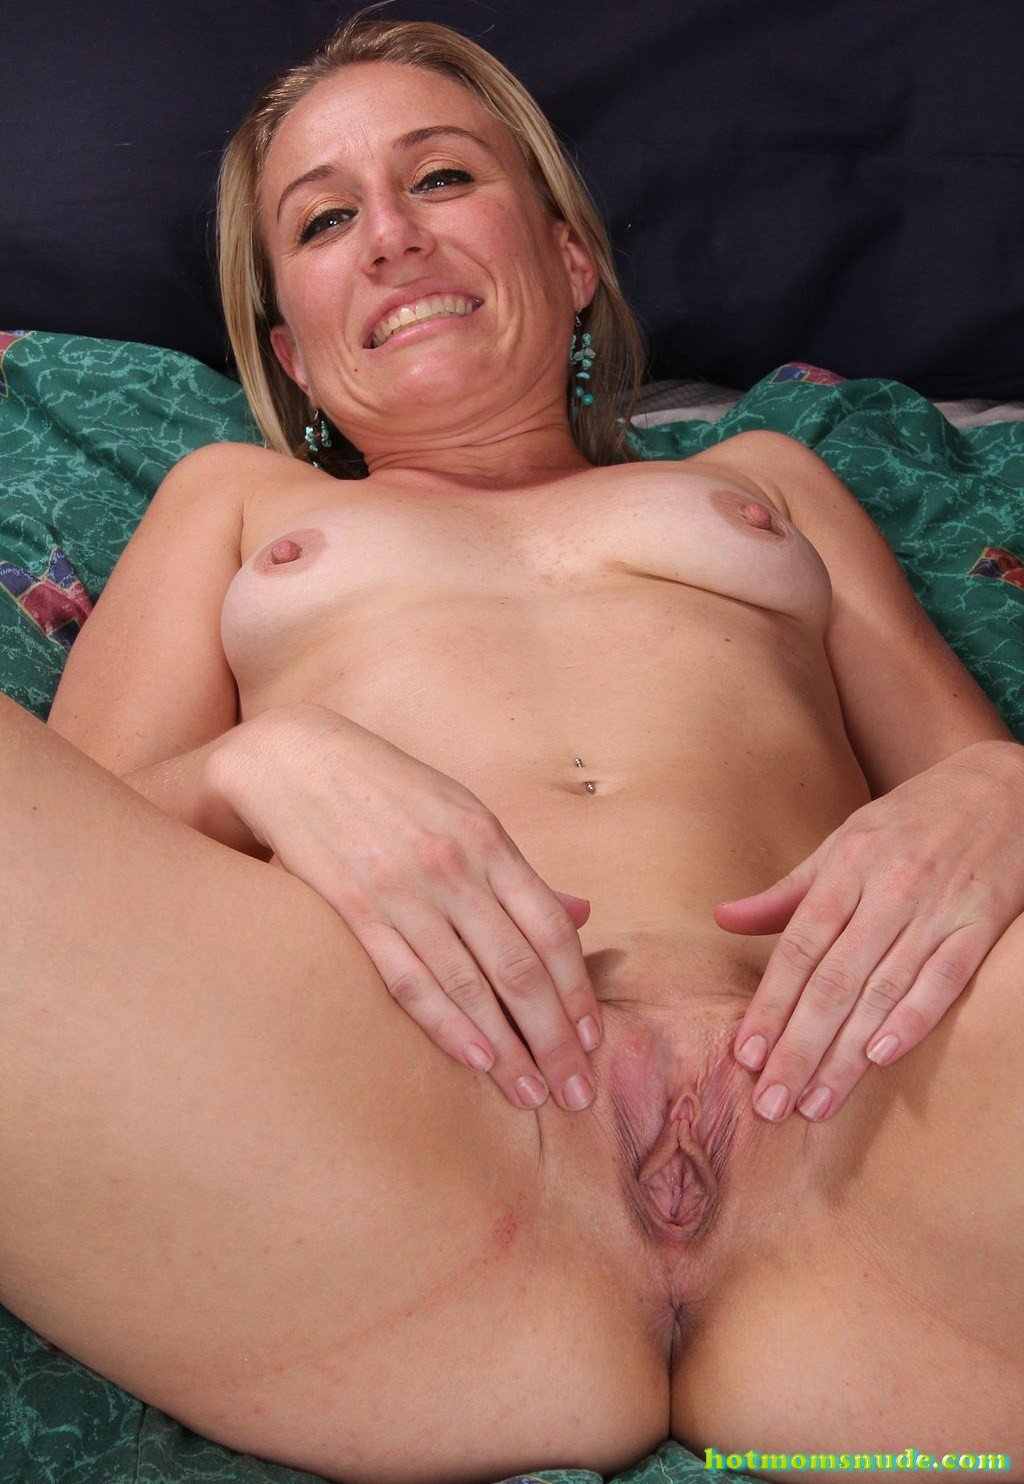 Milf Chance Nude Pics And Biography - Hot Moms Nude-4110